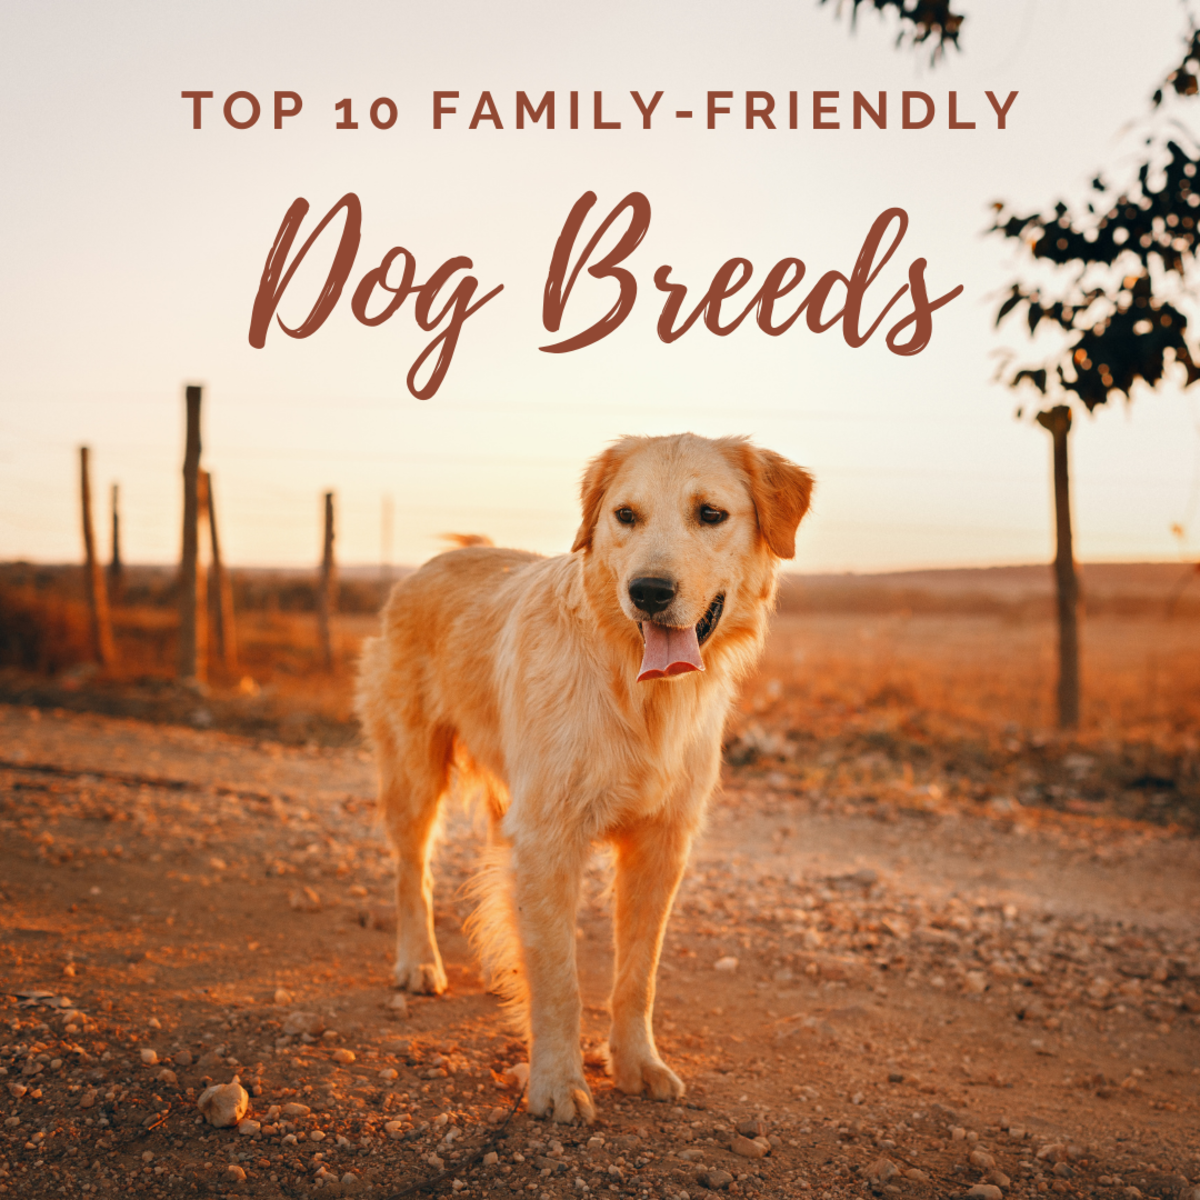 10 cute and family-friendly dog breeds